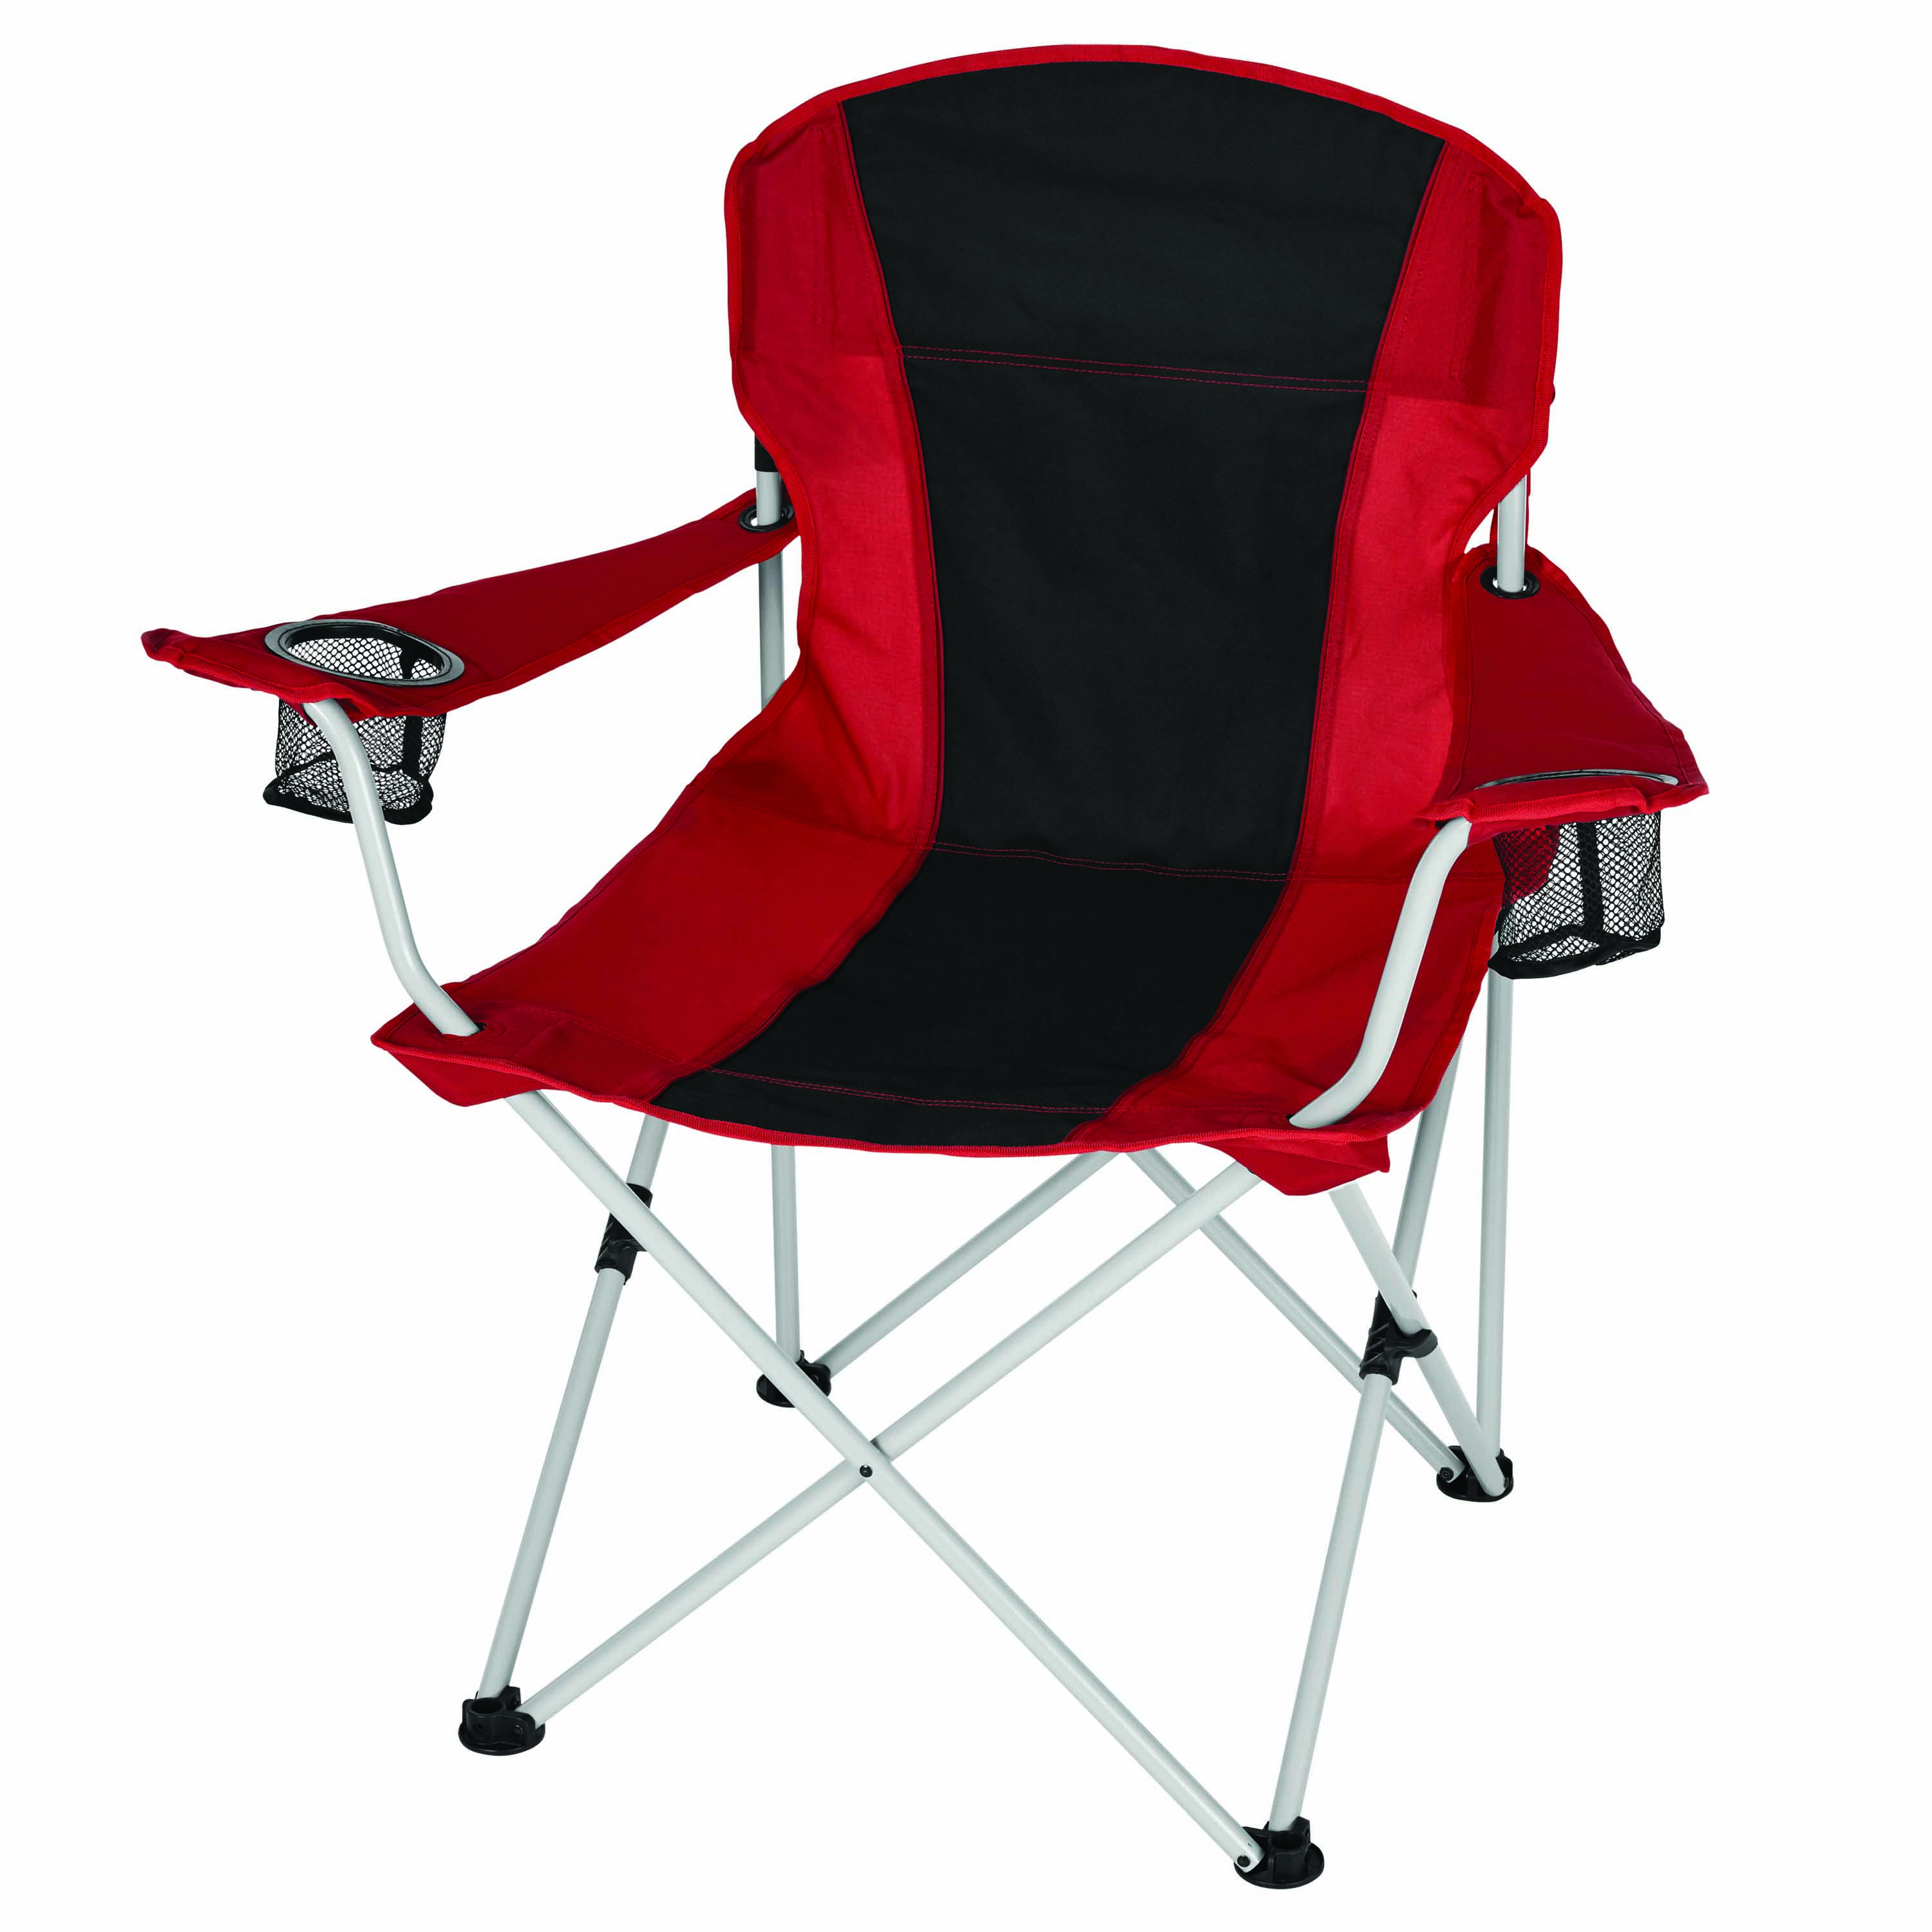 Ozark Trail Oversized Chair With Cup Holders And Quick Pack Strap